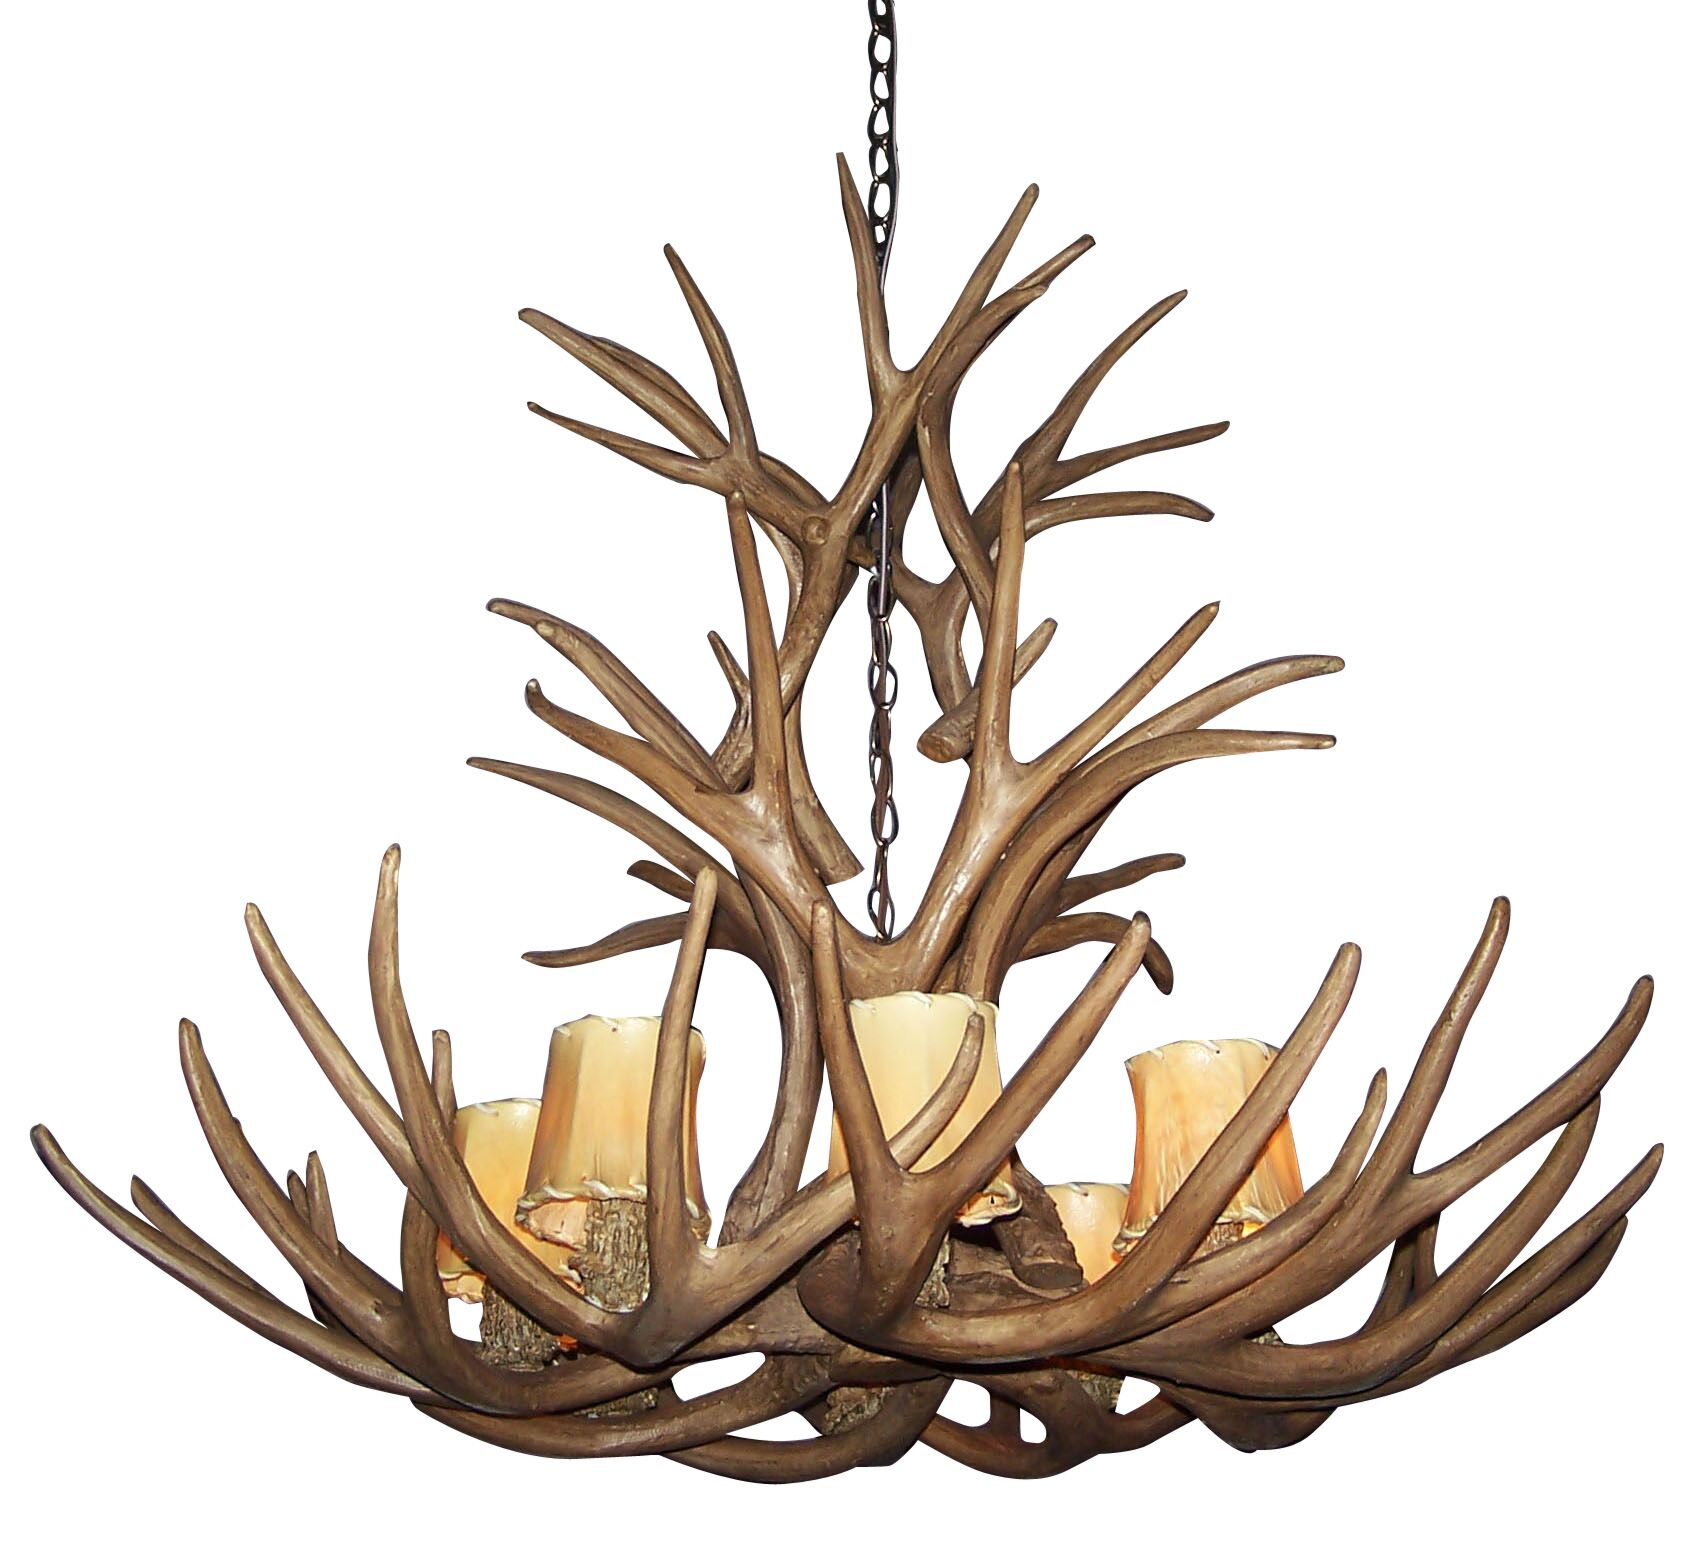 Attwood Antler Mule Deer Cascade 8-Light We have associated to option Chandelier Shade Color: Parchment, Finish: Rustic Bronze/Brown, Shade Included: Yes